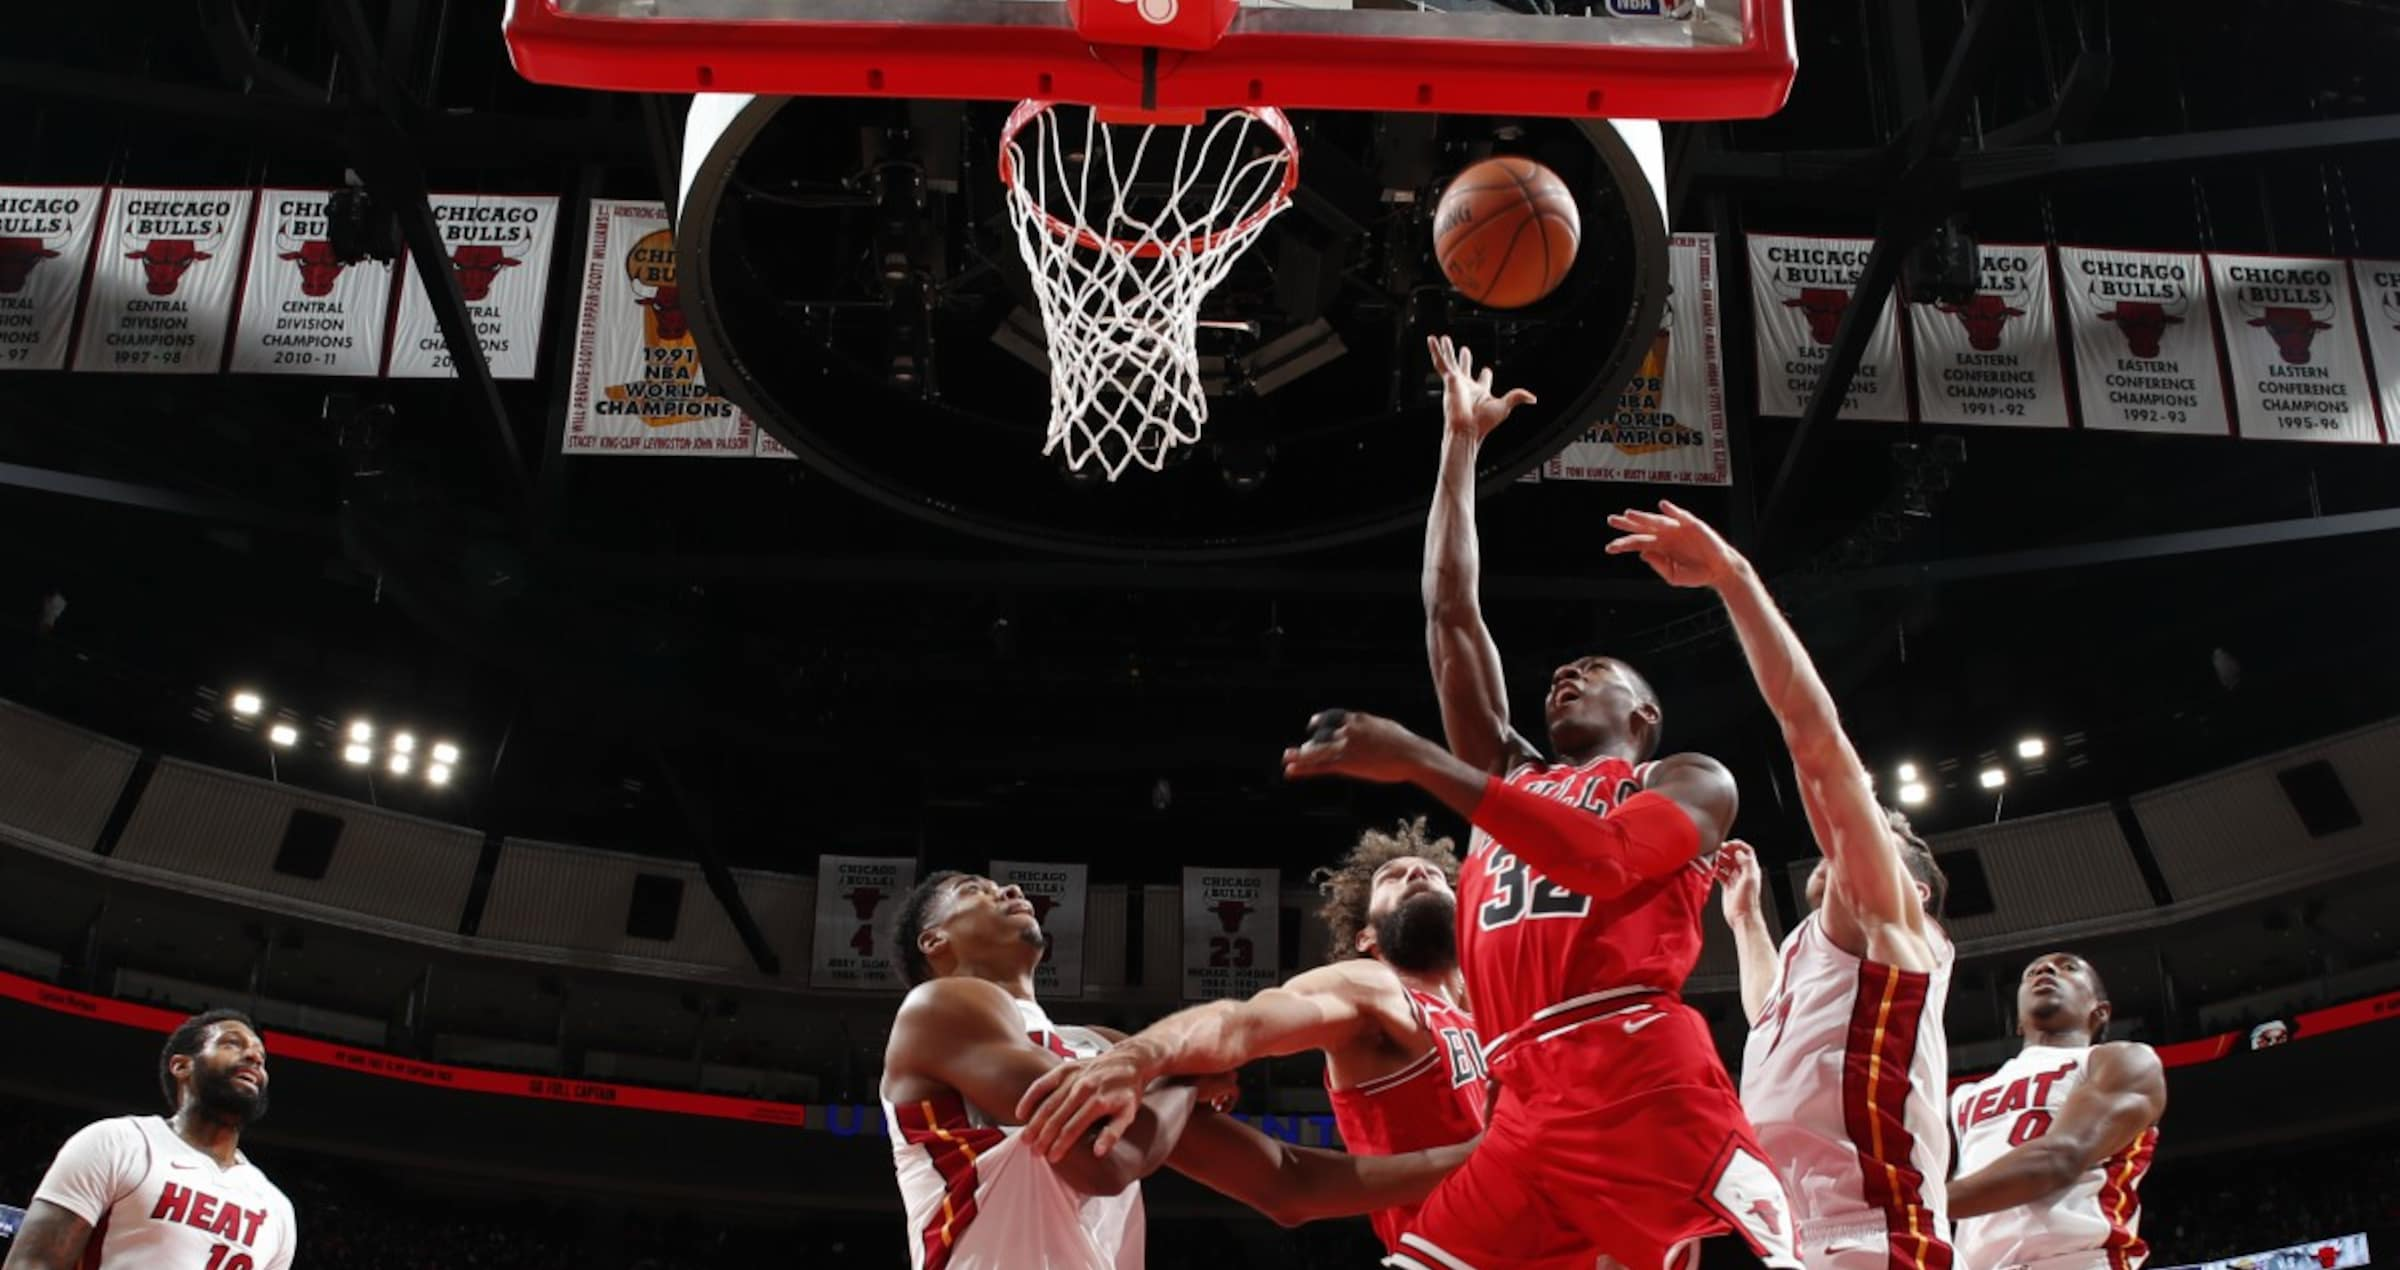 Dunn goes for the layup against Miami at home